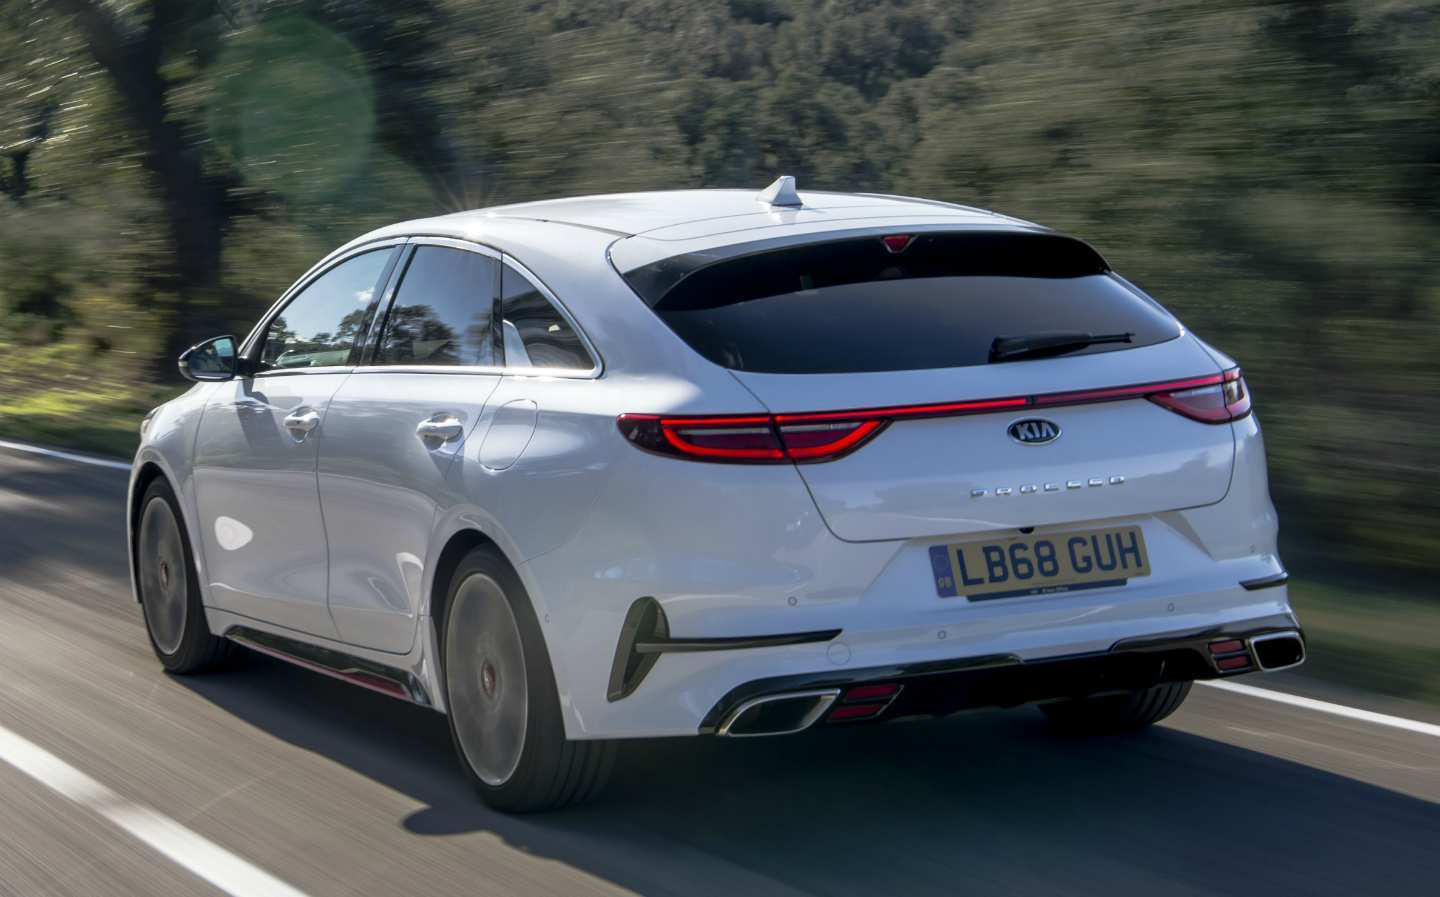 92 All New Kia Gt 2019 Images with Kia Gt 2019